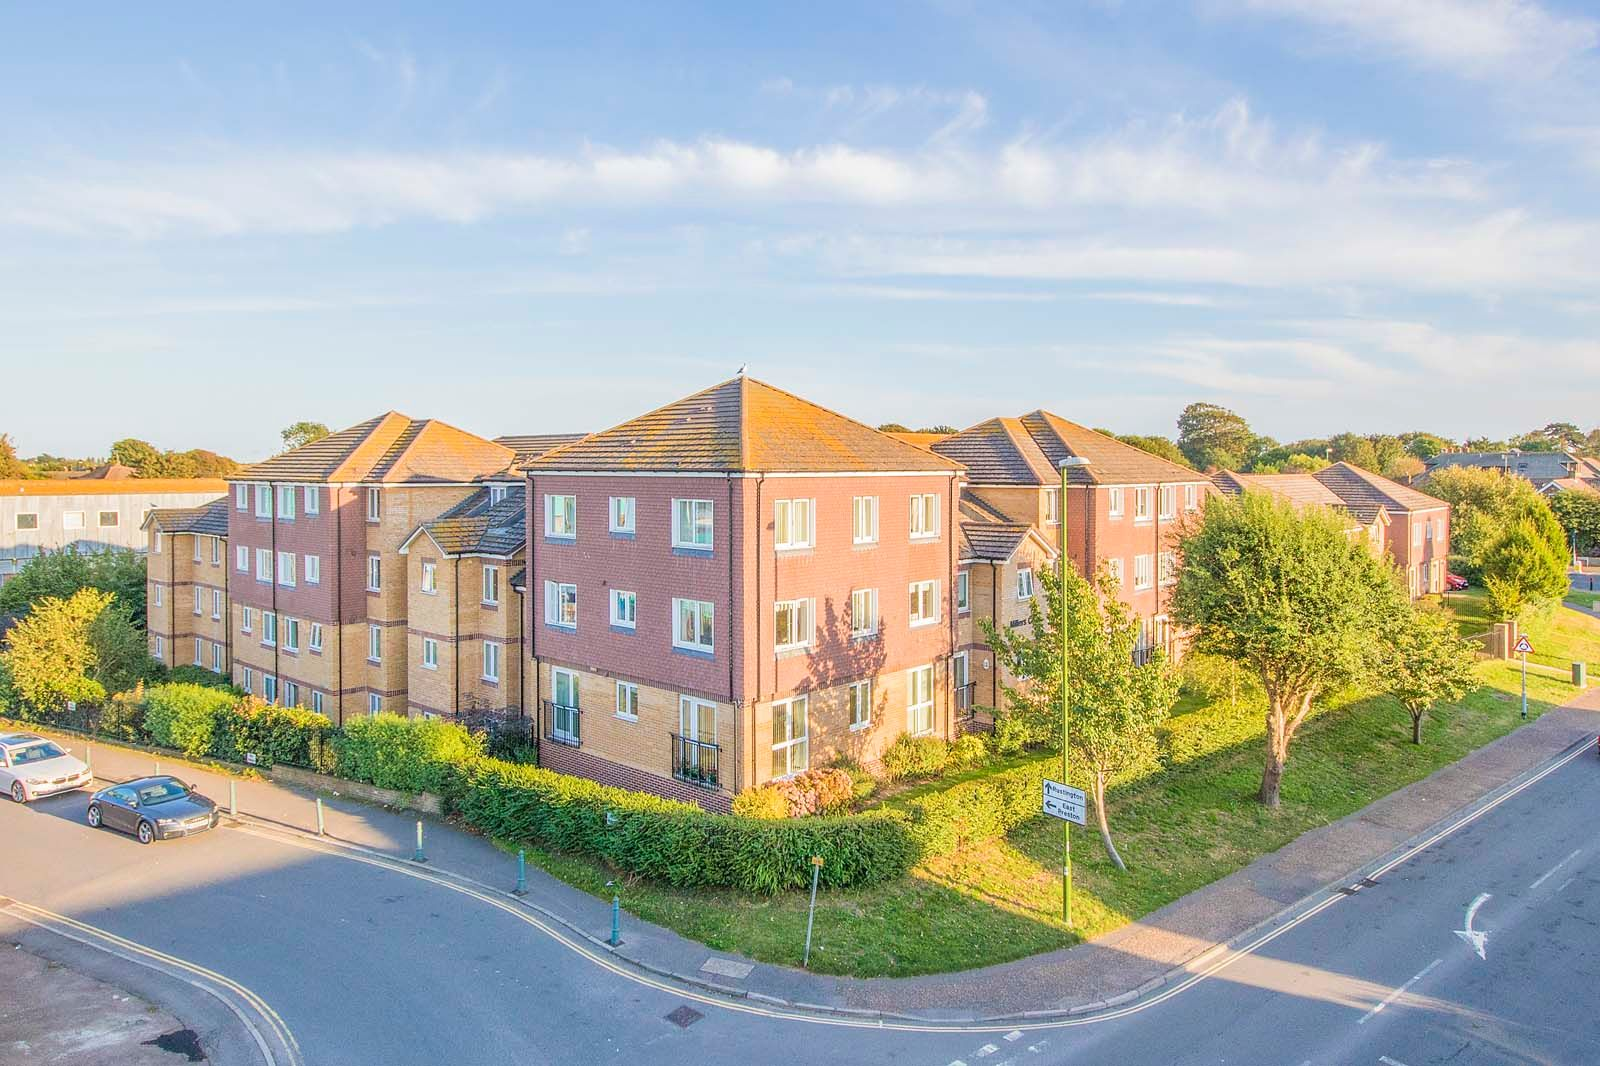 2 bed for sale in East Preston - Elevated view (Property Image 0)